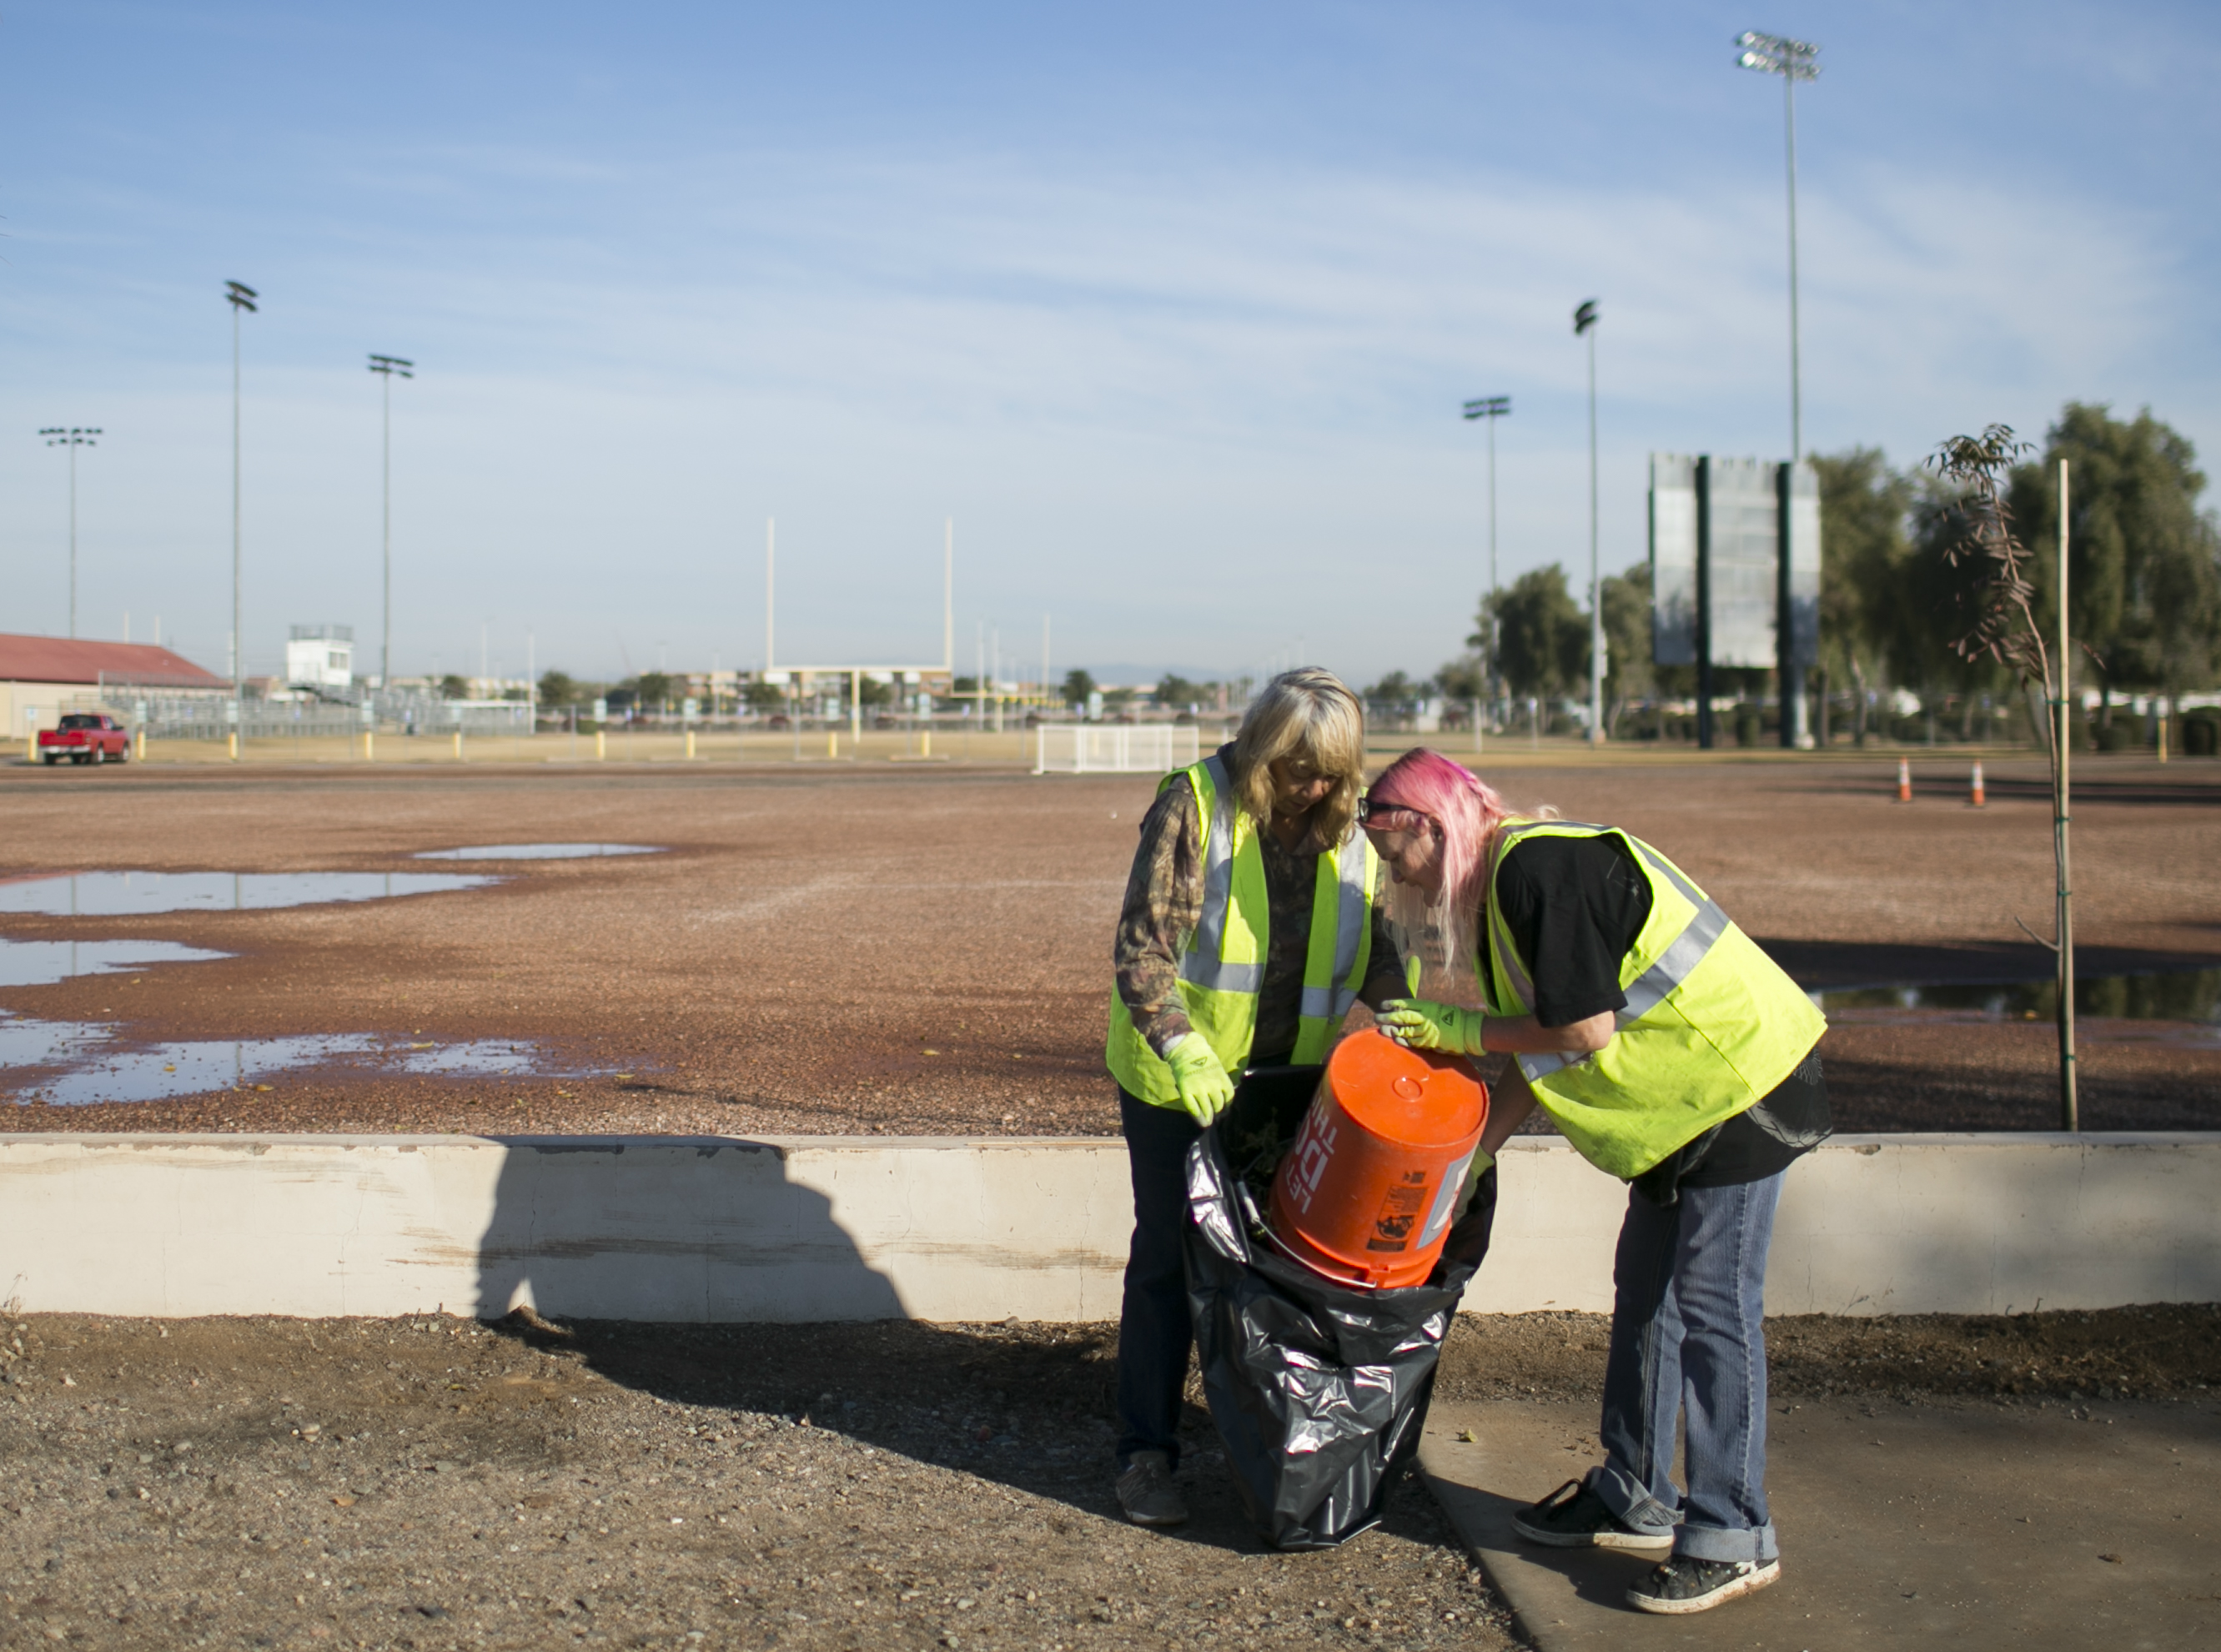 Jeanette Herring (left) alongside Sherry Millegan (right) help clean Grand Canal Linear Park as part of the Phoenix Rescue Mission's Glendale Works program on Jan. 7, 2019 in Glendale, Arizona. The Glendale Works program was started by Phoenix Rescue Mission in November of 2018 as an opportunity to get homeless persons working and making an income.